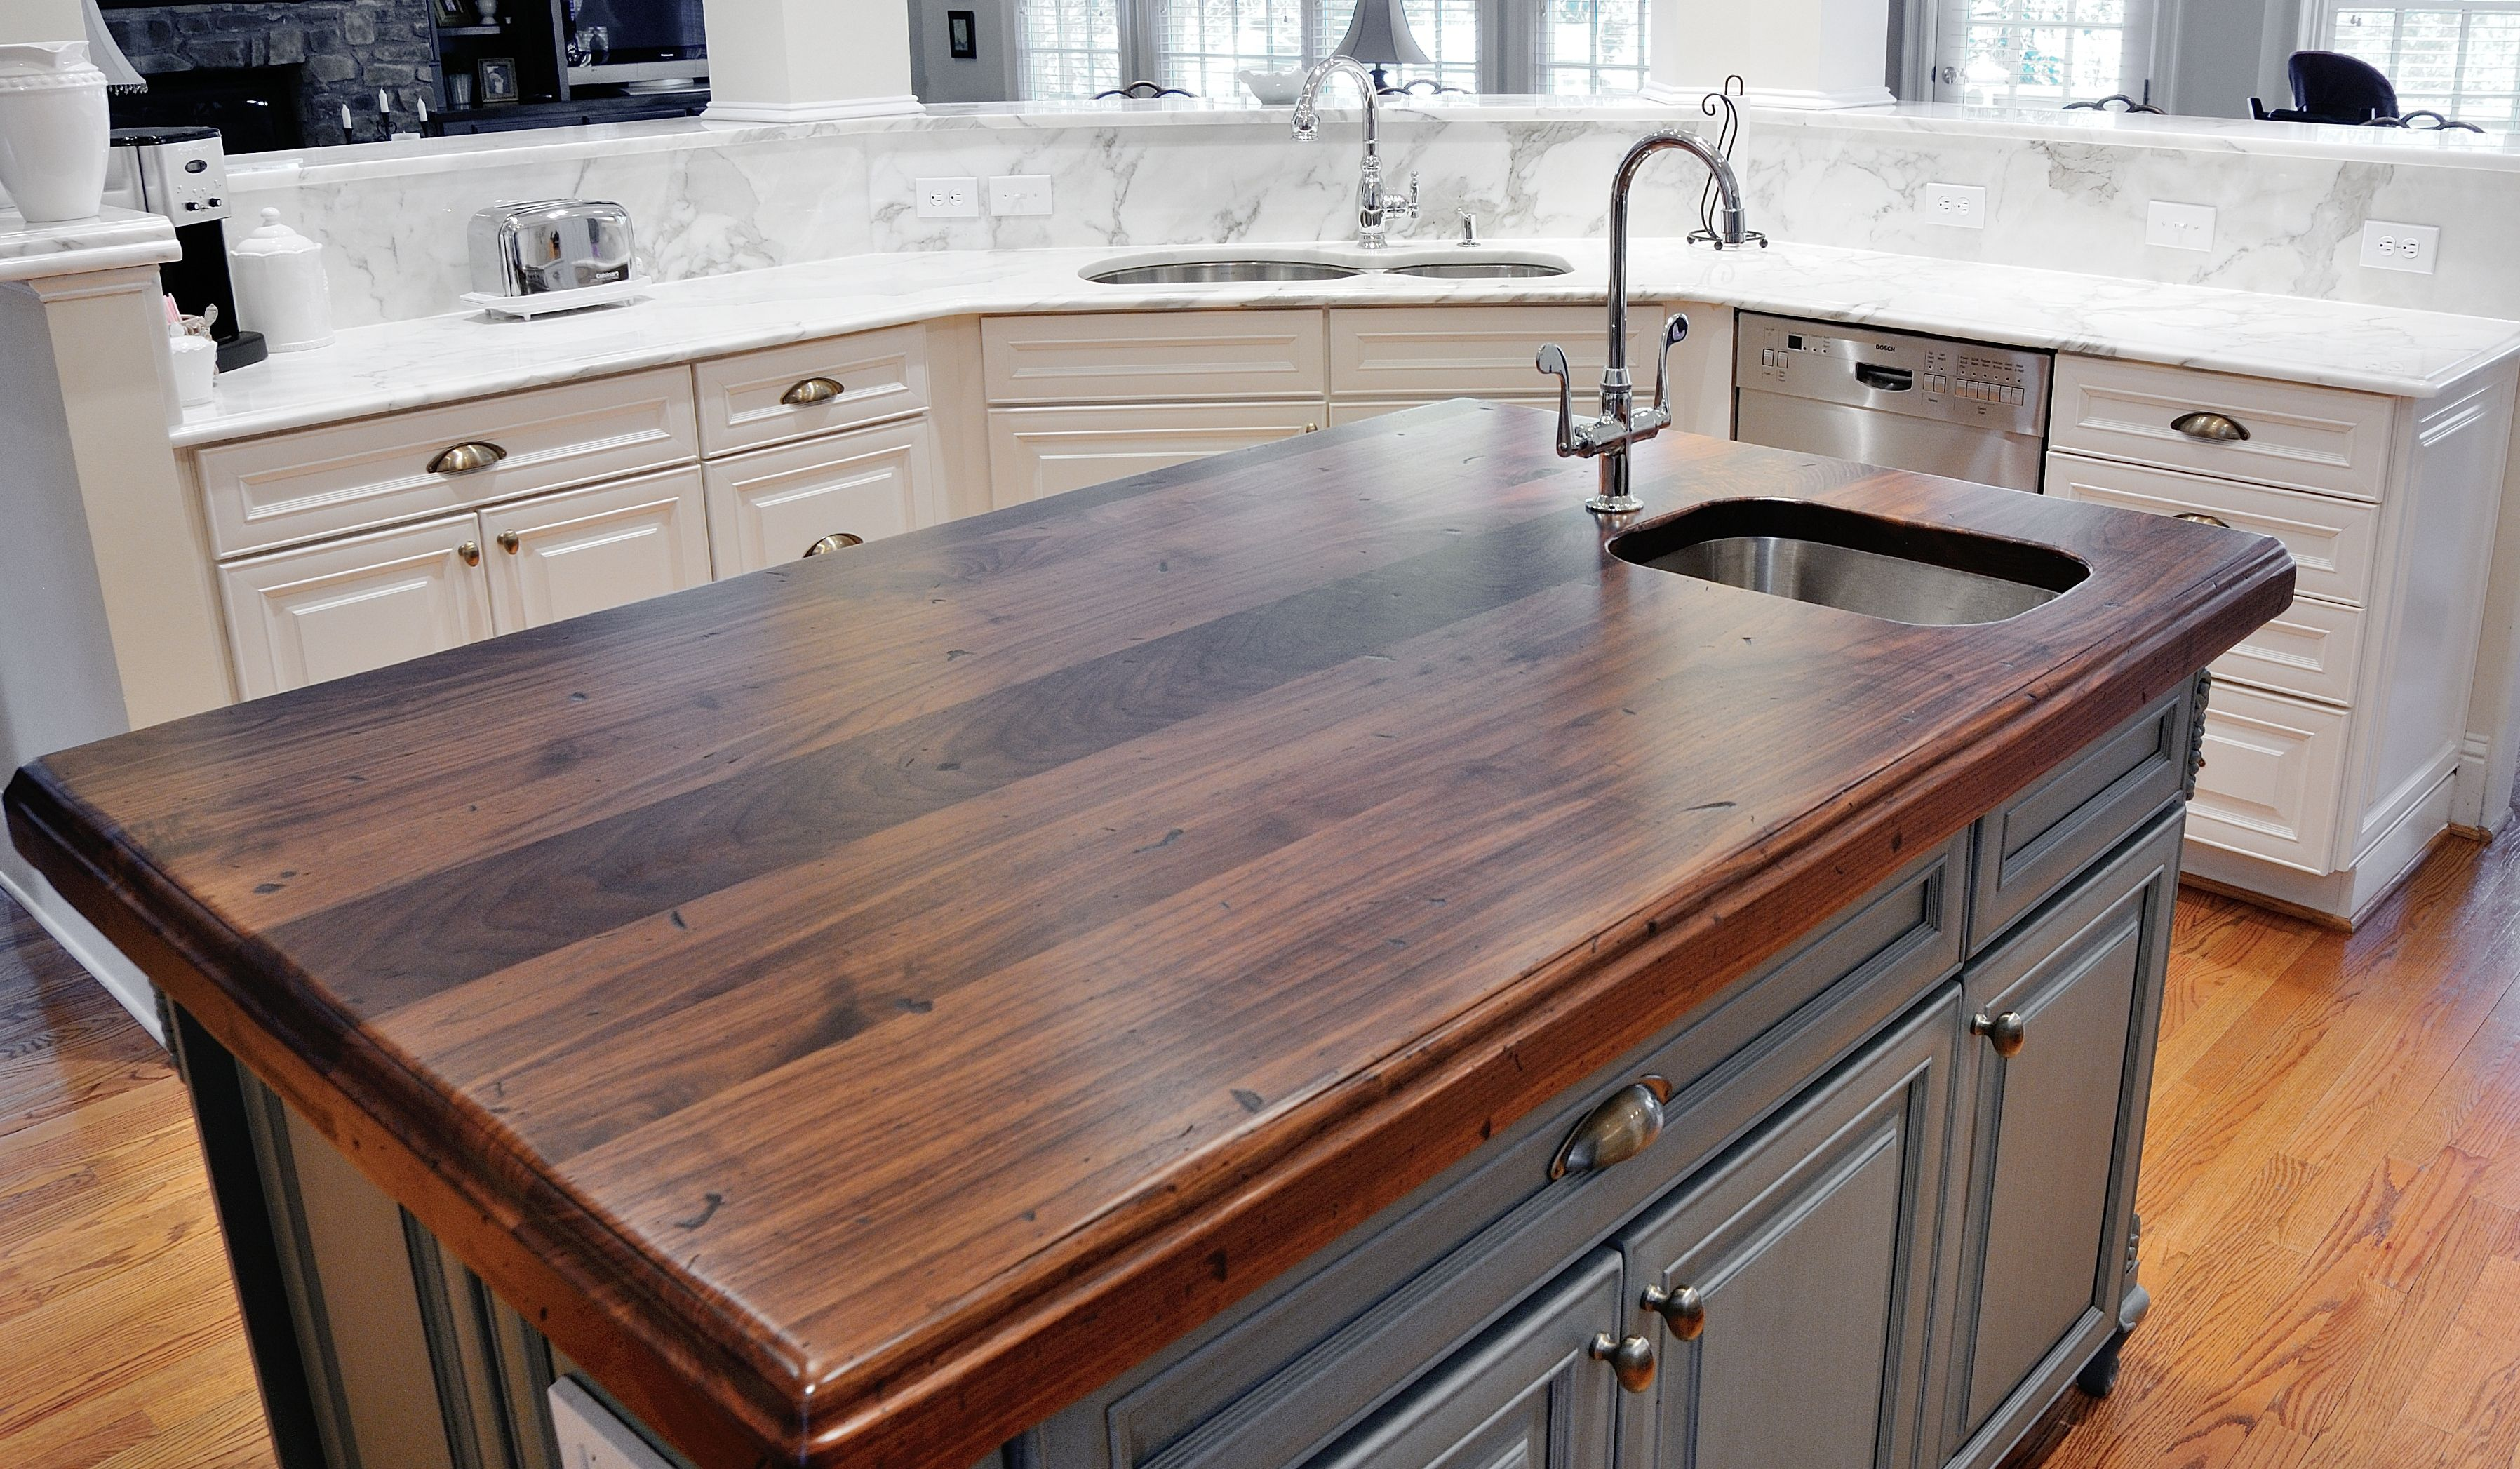 Pin By Construction Resources On Cr Products Installations Rustic Countertops Walnut Kitchen Island Island Countertops